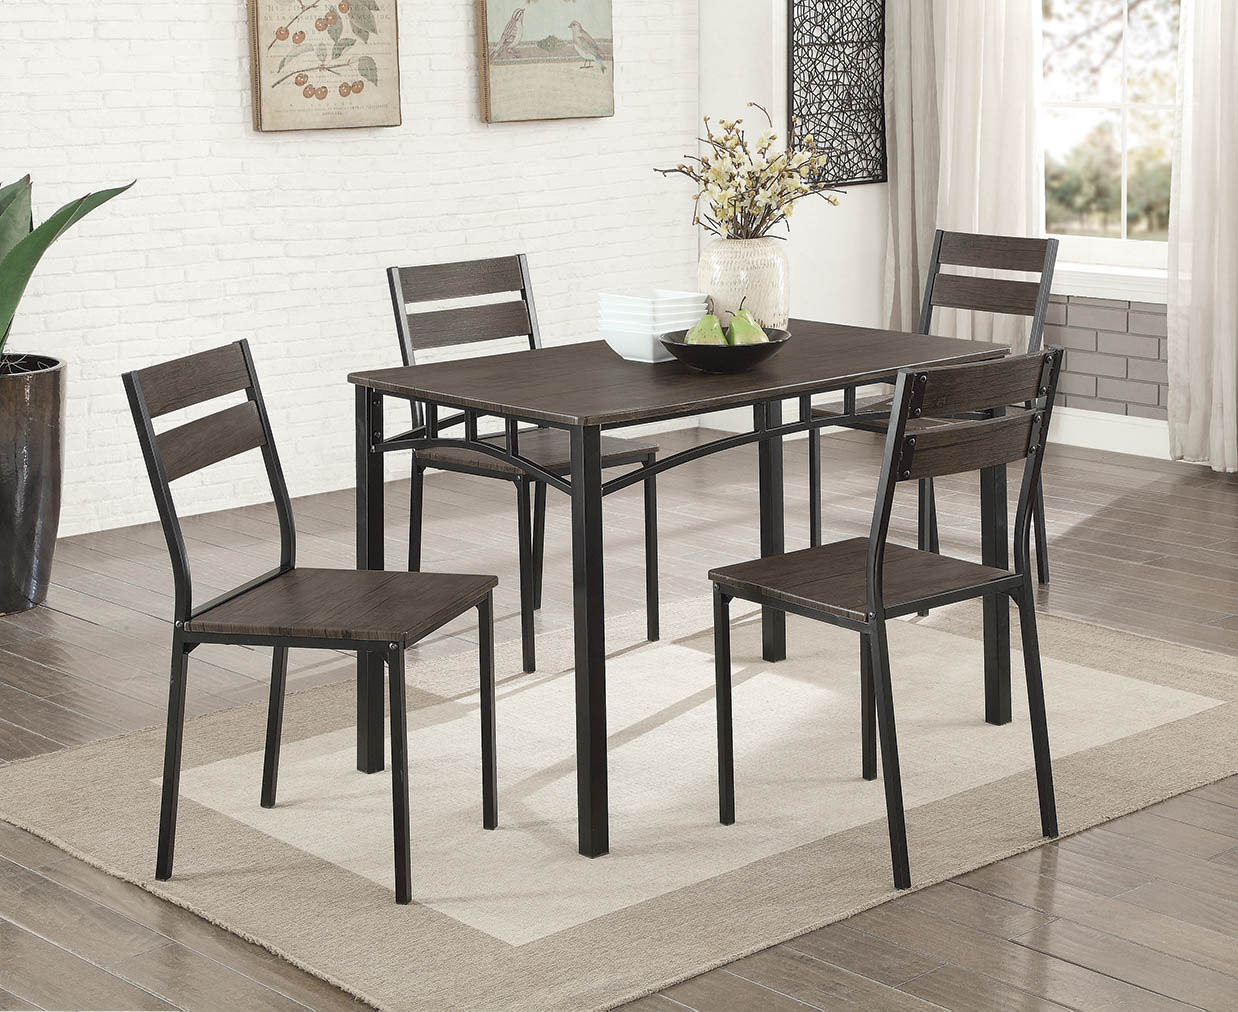 Autberry 5 Piece Dining Set With Regard To Most Current Isolde 3 Piece Dining Sets (Image 1 of 20)